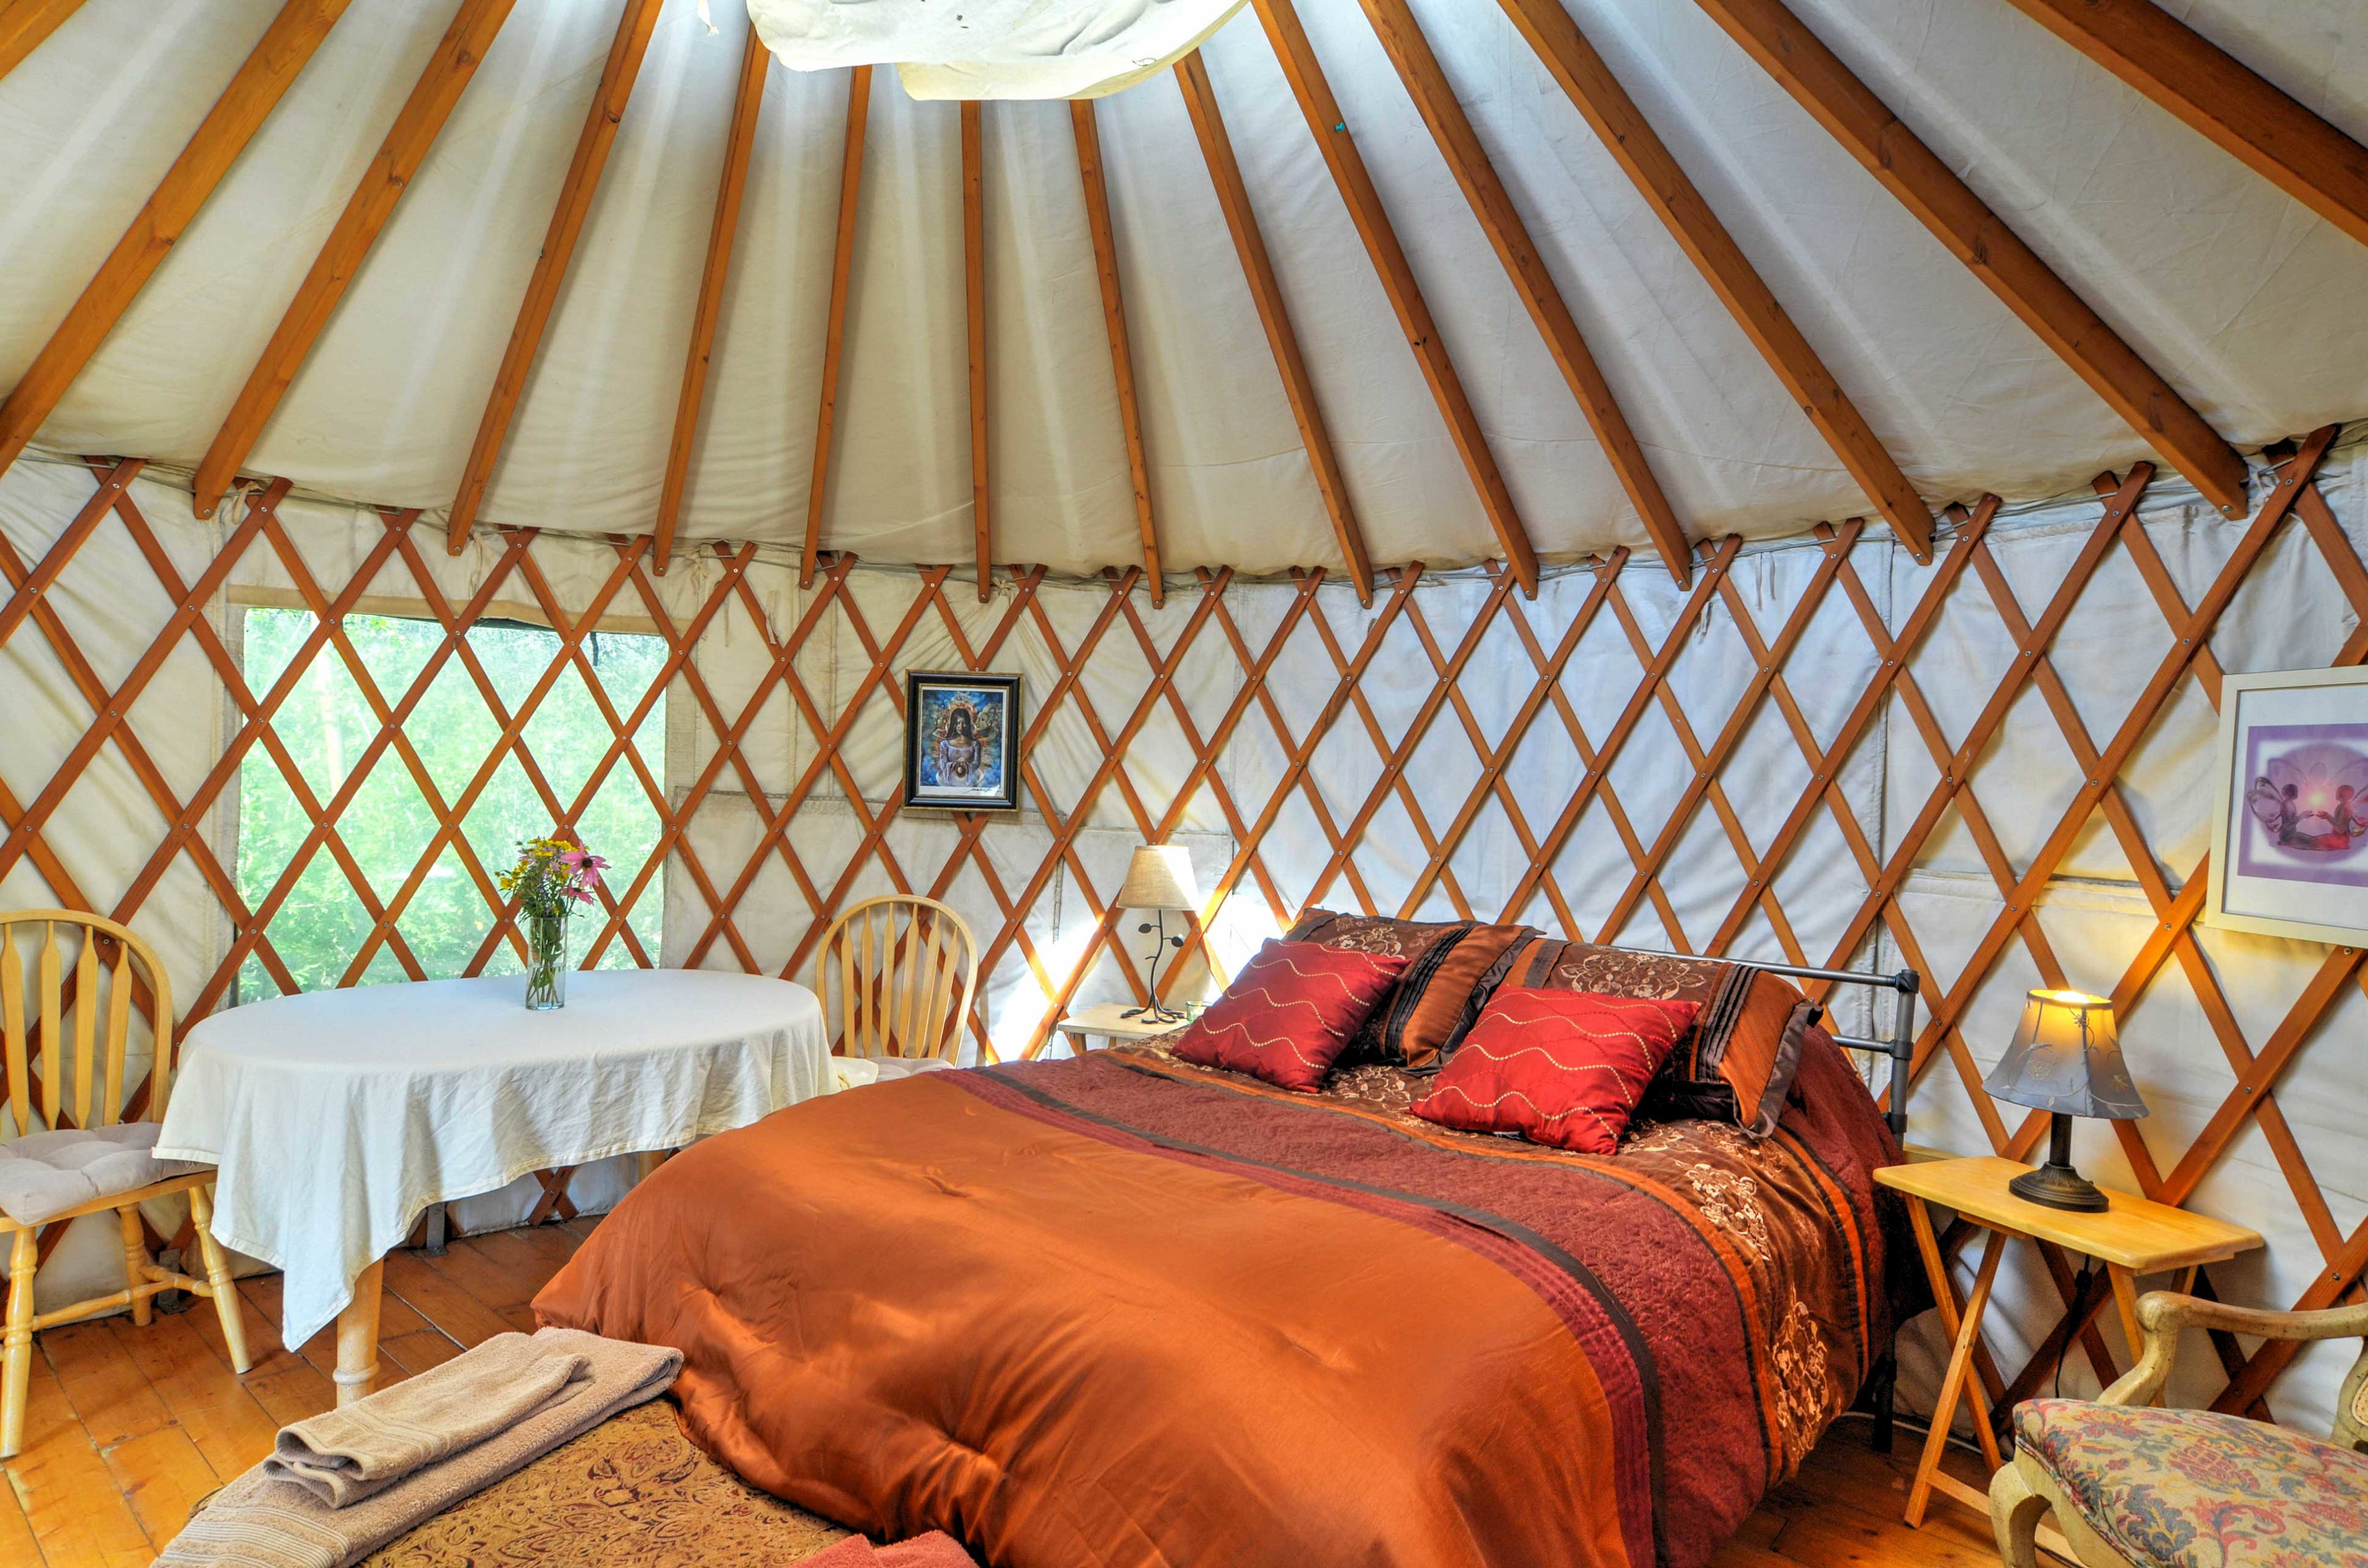 The Yurt features a heater and plush queen-sized bed.